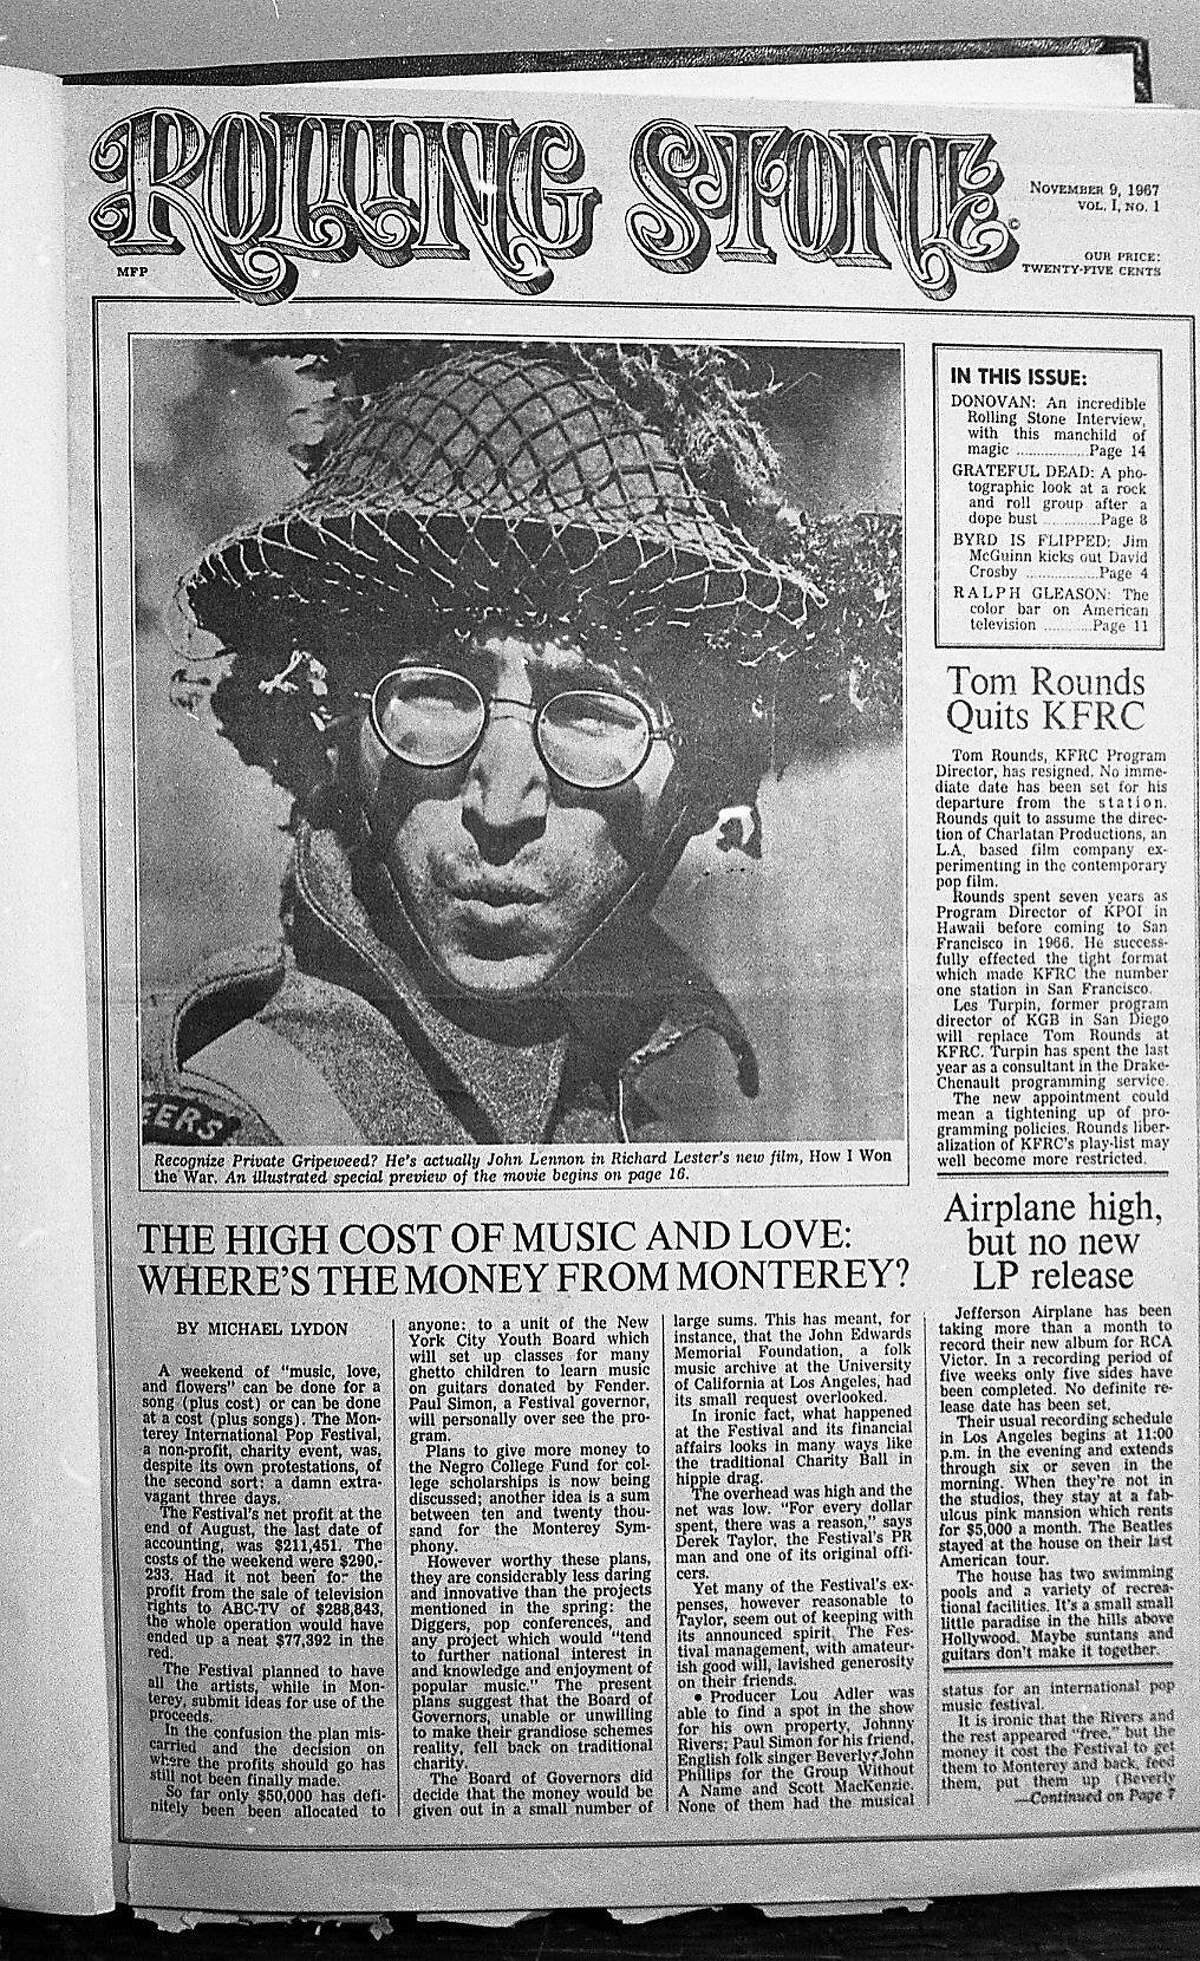 The first issue of the Rolling Stone, dated November 9, 1967